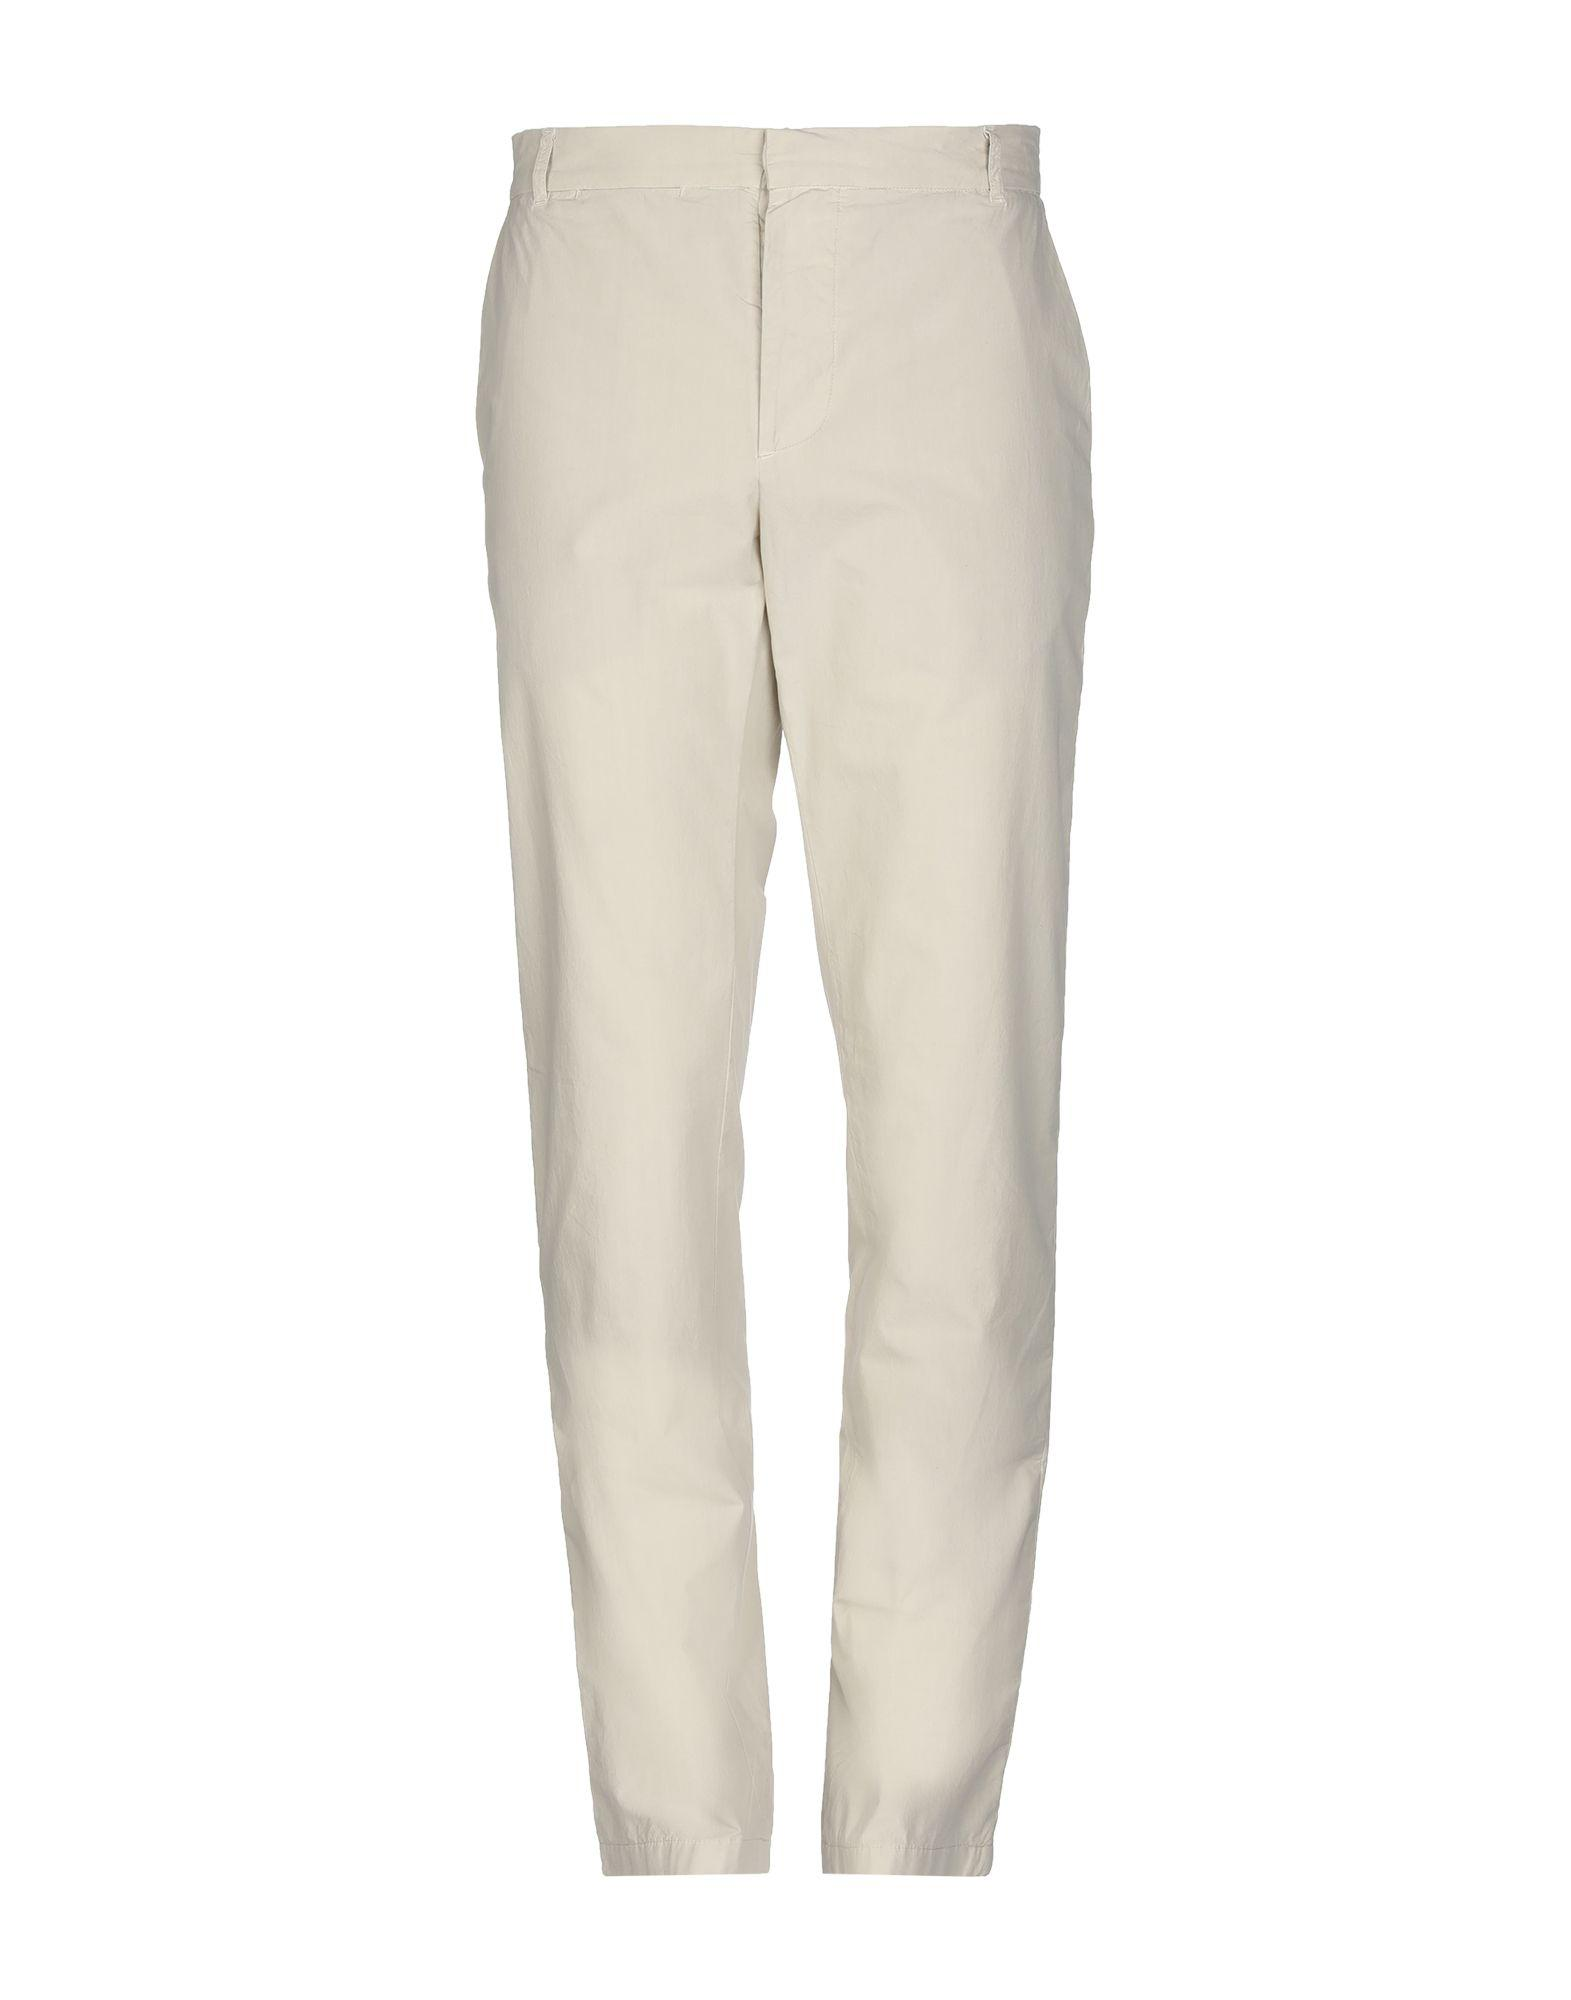 bba8cd414d9b Lyst - Band Of Outsiders Casual Trouser in Natural for Men